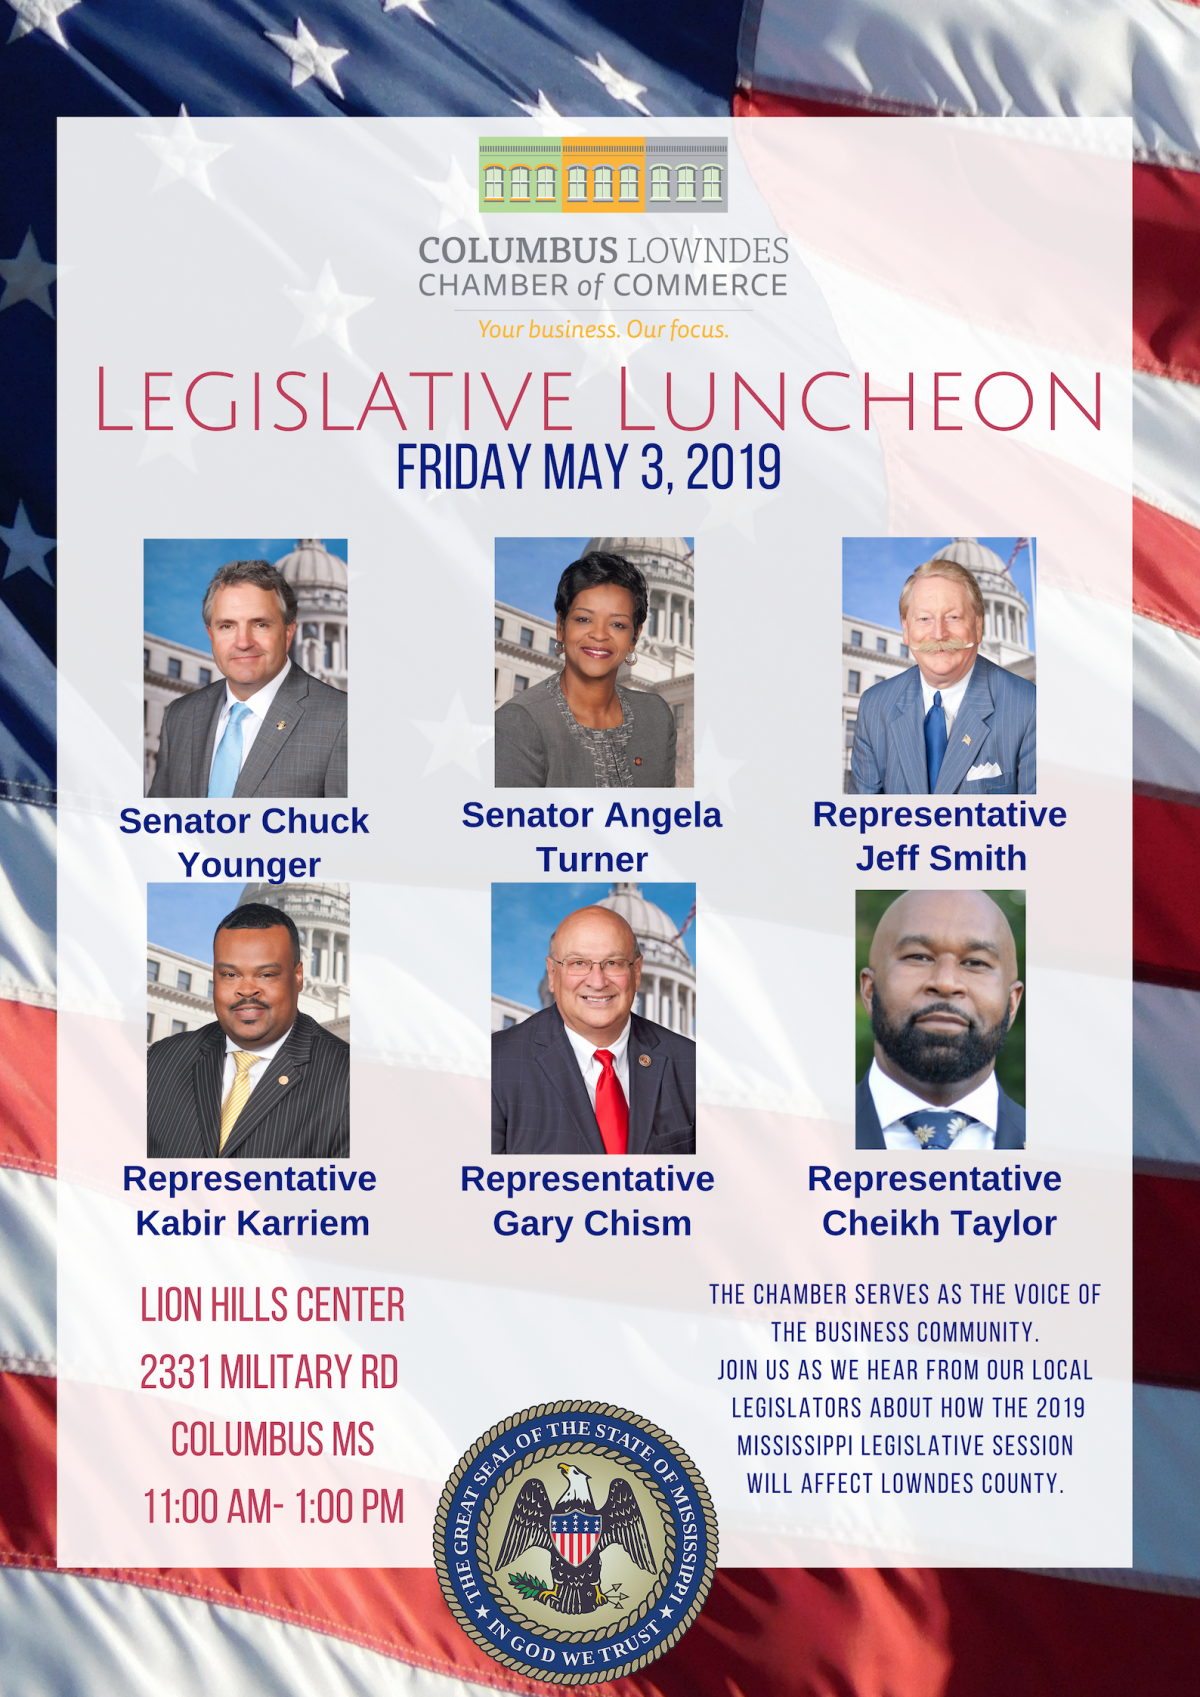 CLCC To Host 3rd Annual Legislative Luncheon for Members